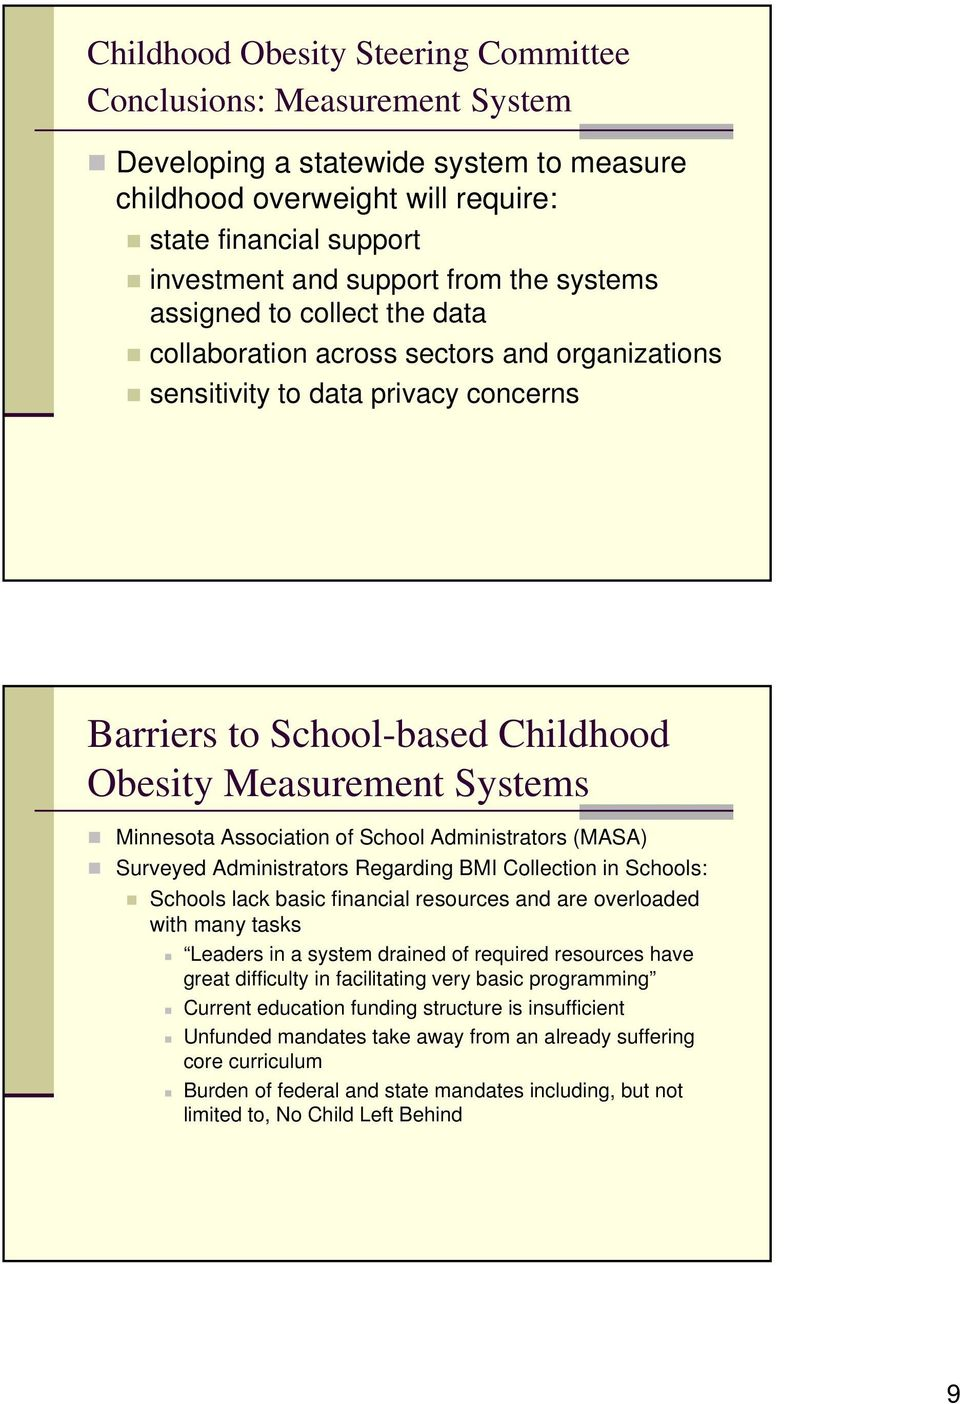 Association of School Administrators (MASA) Surveyed Administrators Regarding BMI Collection in Schools: Schools lack basic financial resources and are overloaded with many tasks Leaders in a system